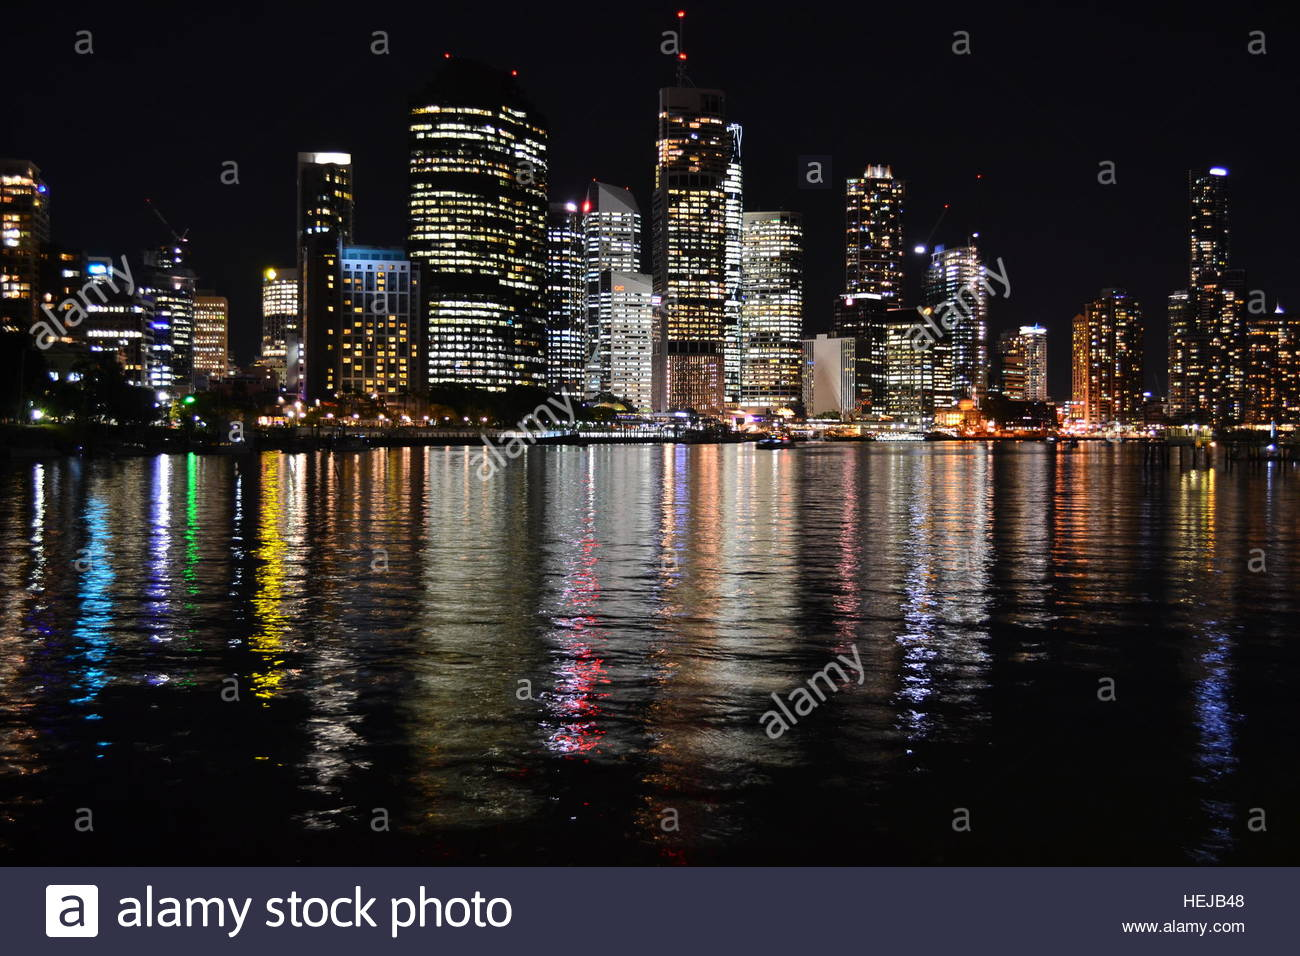 Brisbane Skyline at night, city lights creating colorful reflections in the water - Stock Image